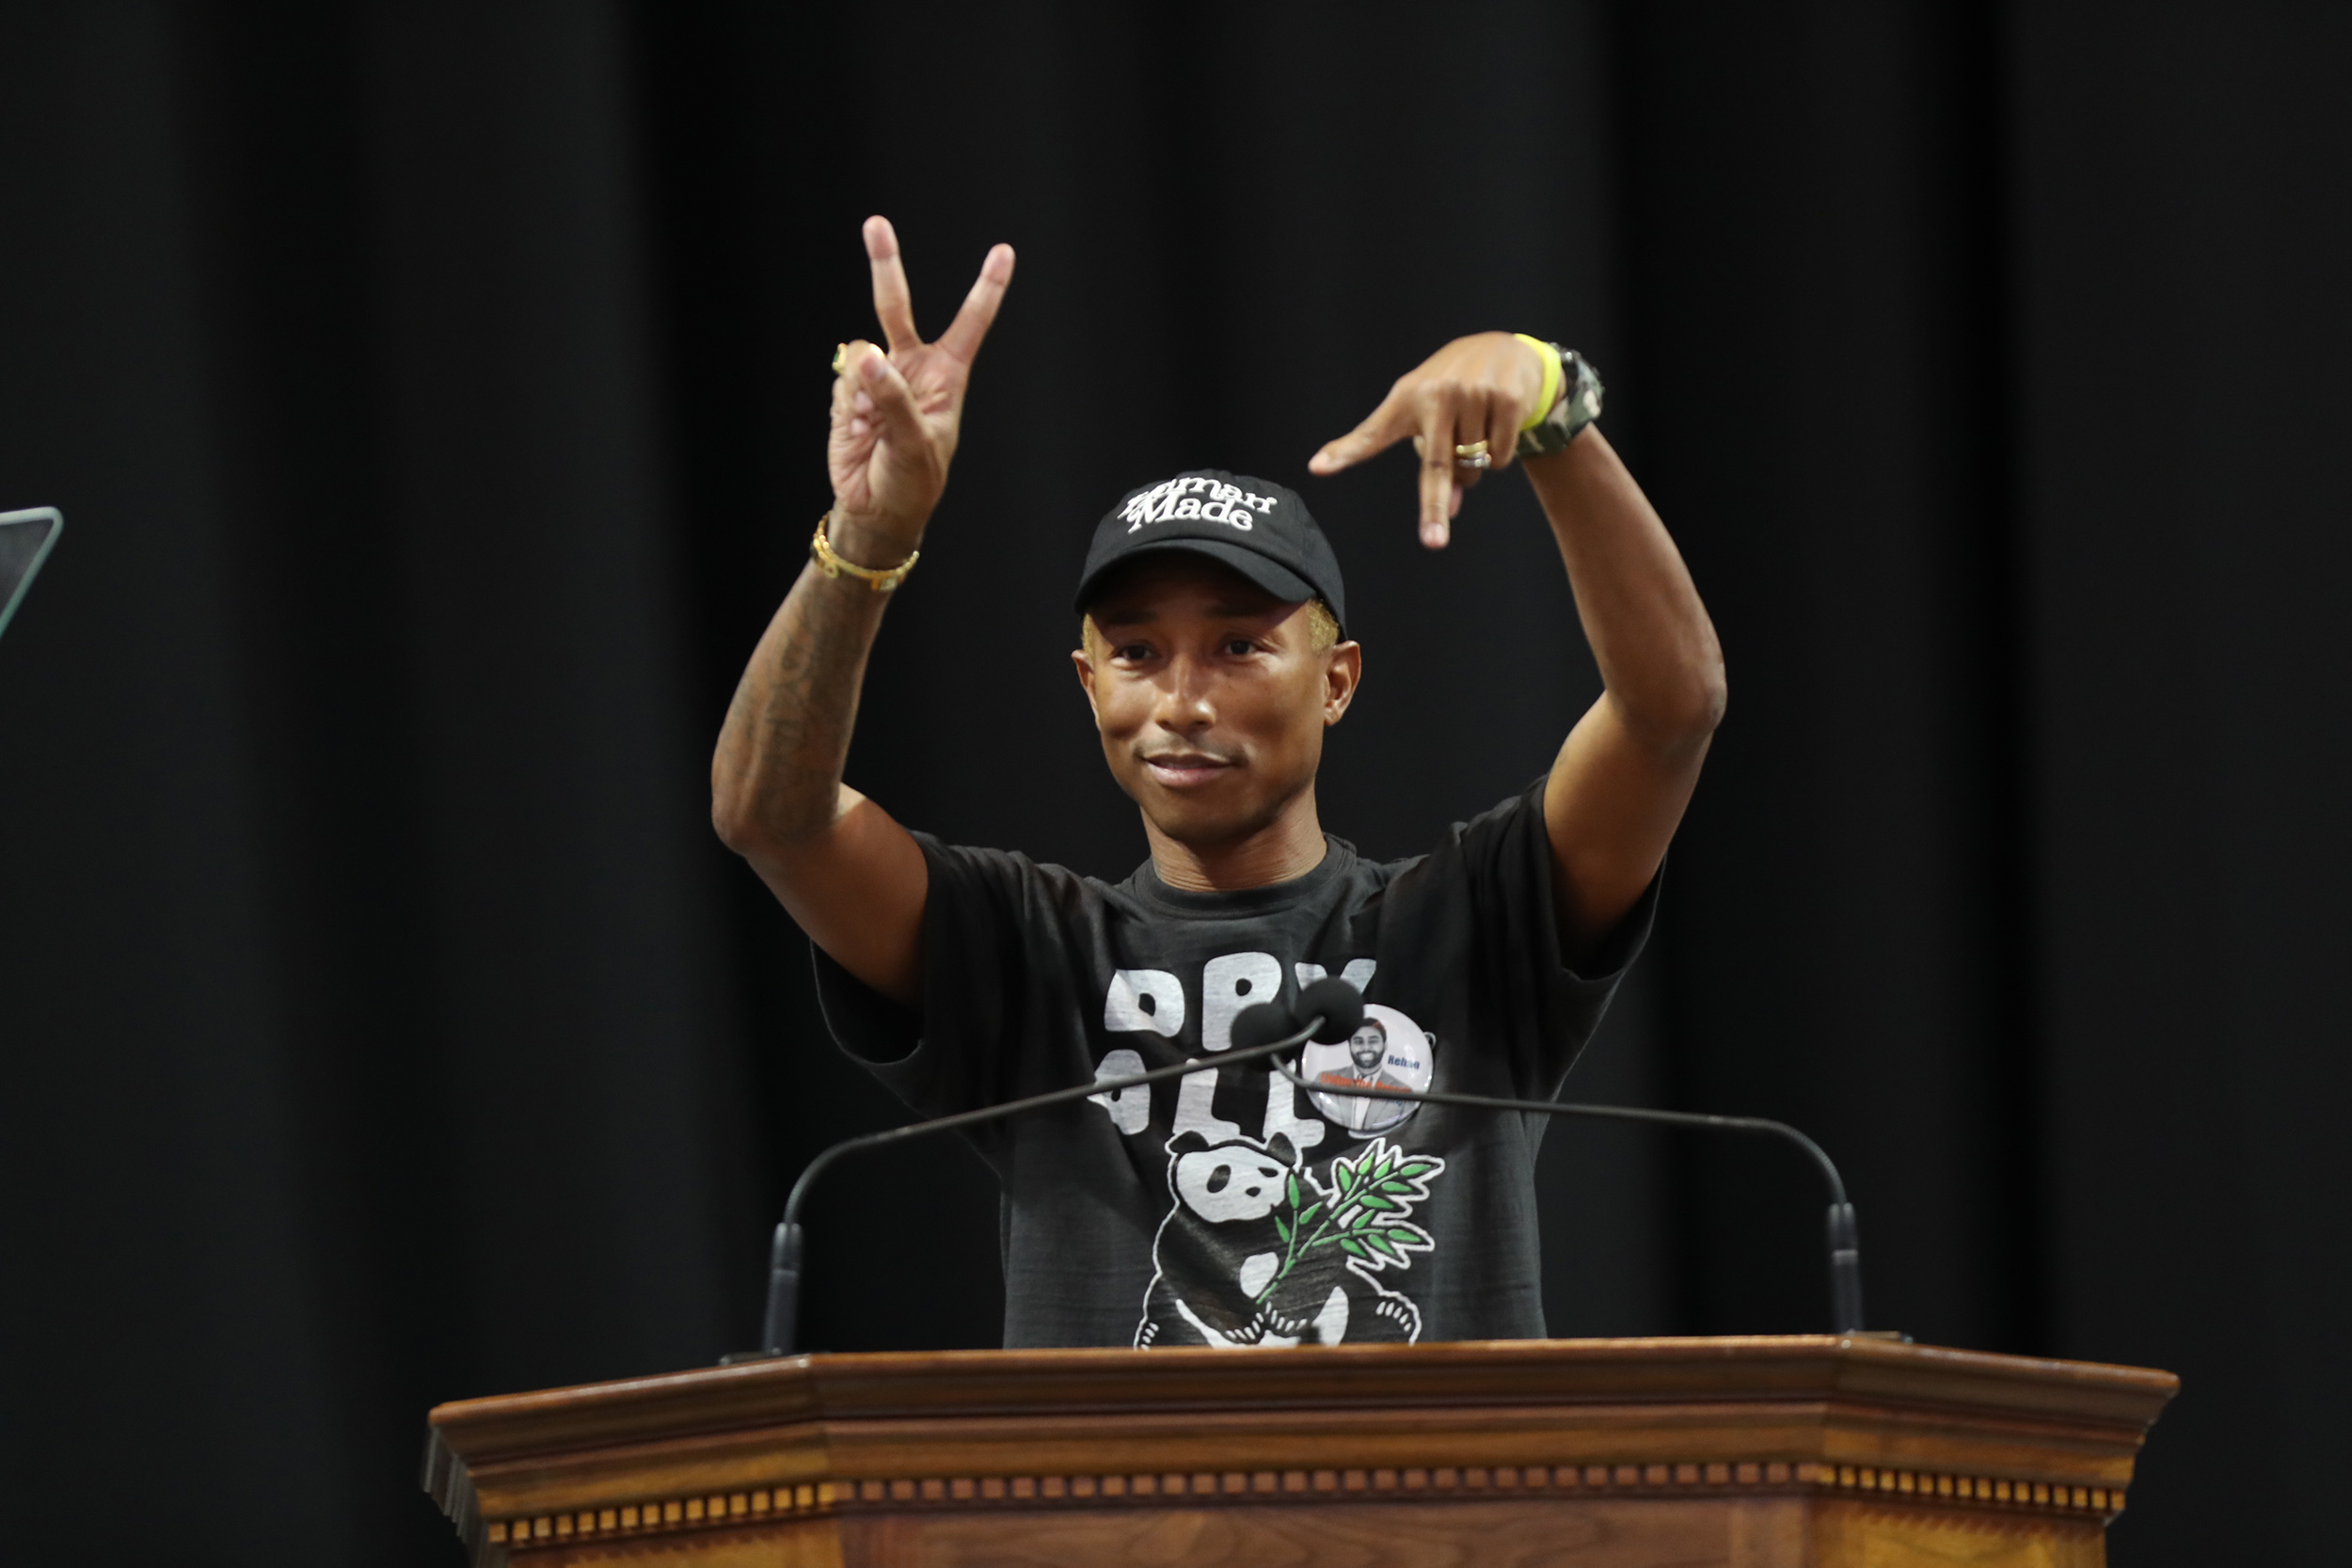 Williams, making the hand gesture for the state of Virginia. (Photo by Dan Addison, University Communications)